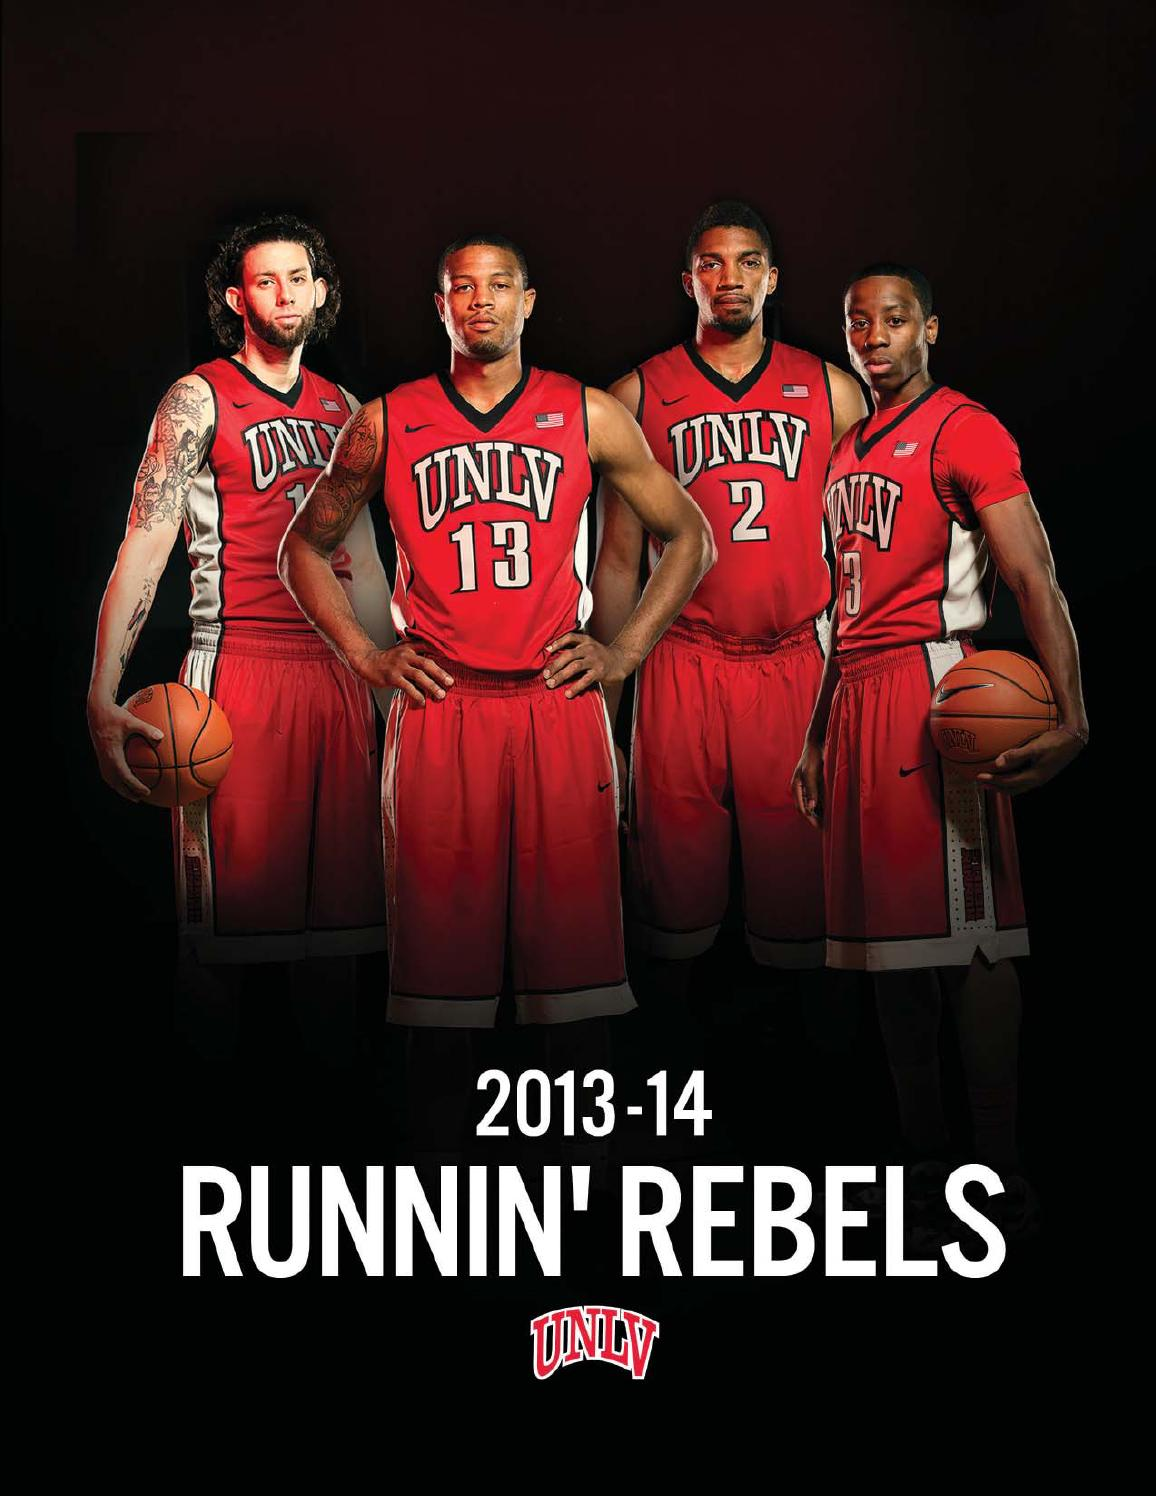 ec090f69e 2013-14 UNLV Men s Basketball Media Guide by UNLV Sports Information - issuu